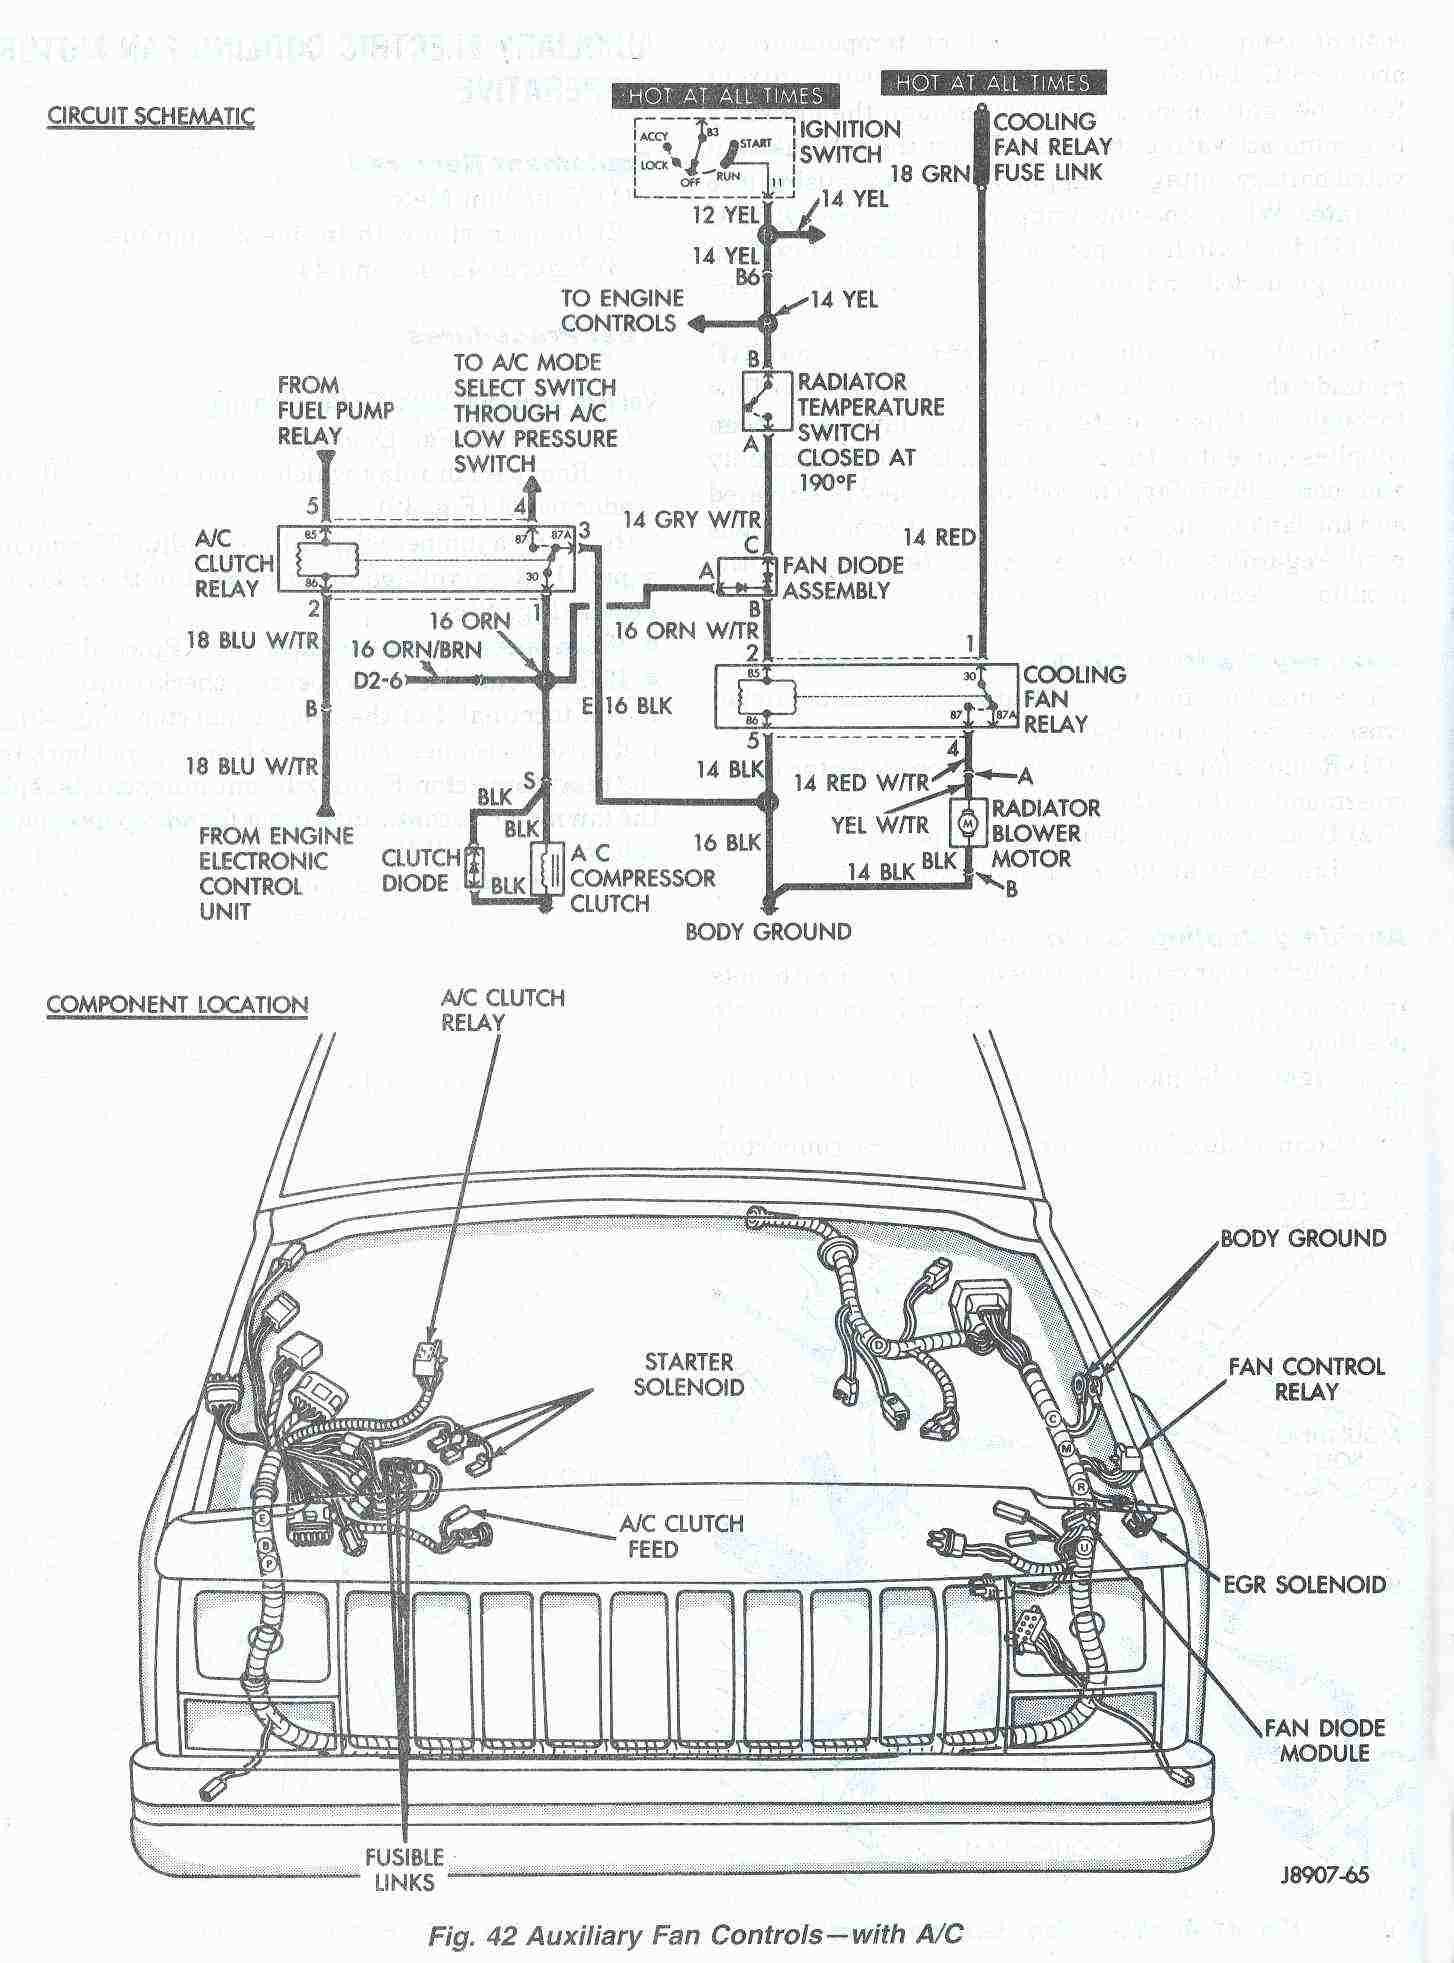 e8c83109bad6c41d377df8c1cb7a8dc4 at the asd relay if vole is not b16 check fuse 20 30 a good there 1998 jeep grand cherokee heater control wiring diagram at nearapp.co